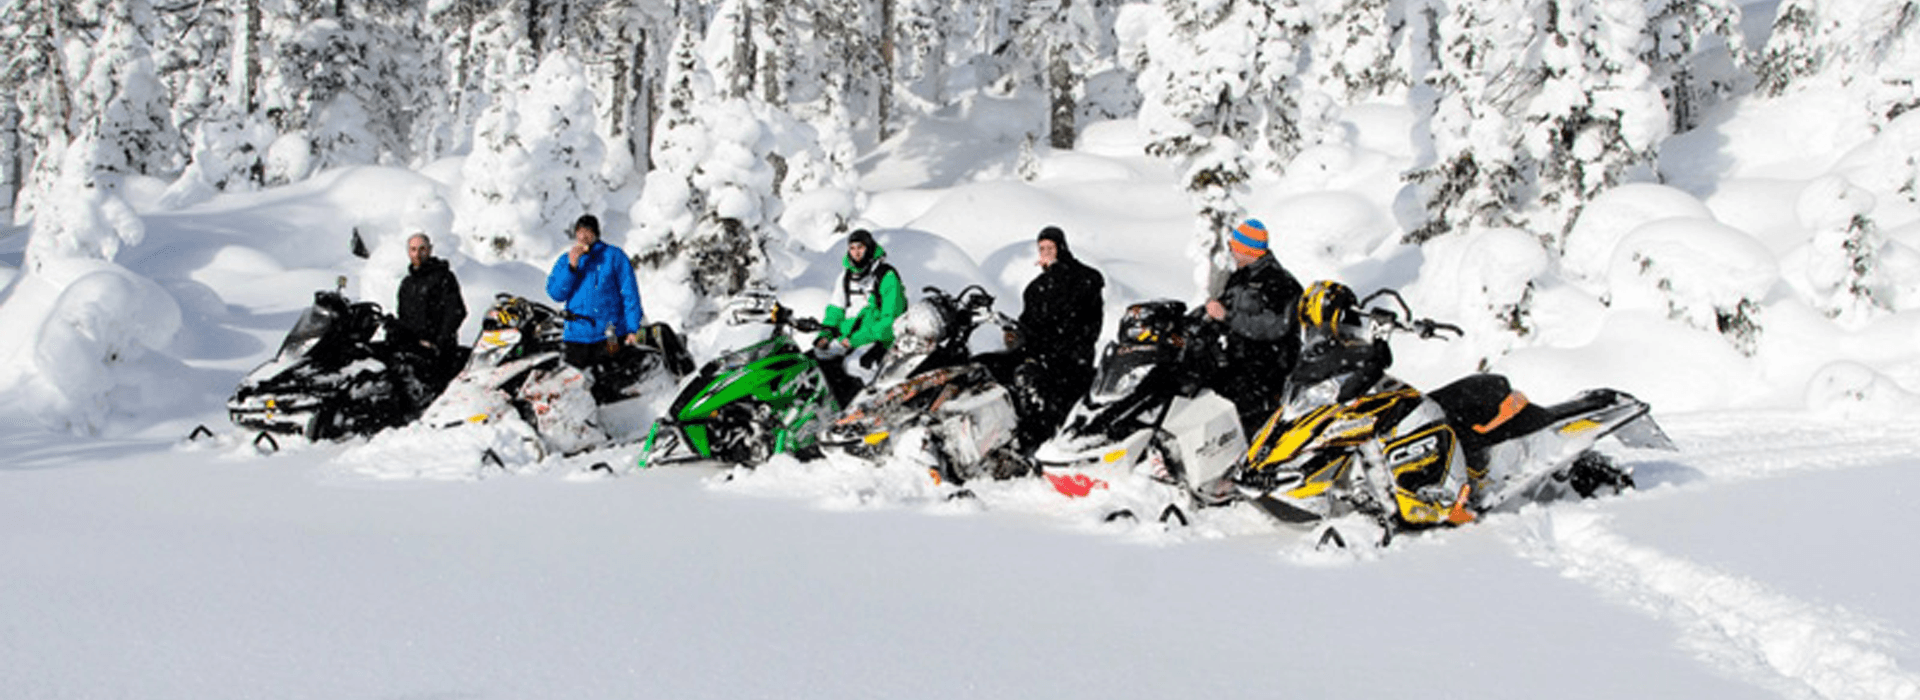 snowmobile tours group resting